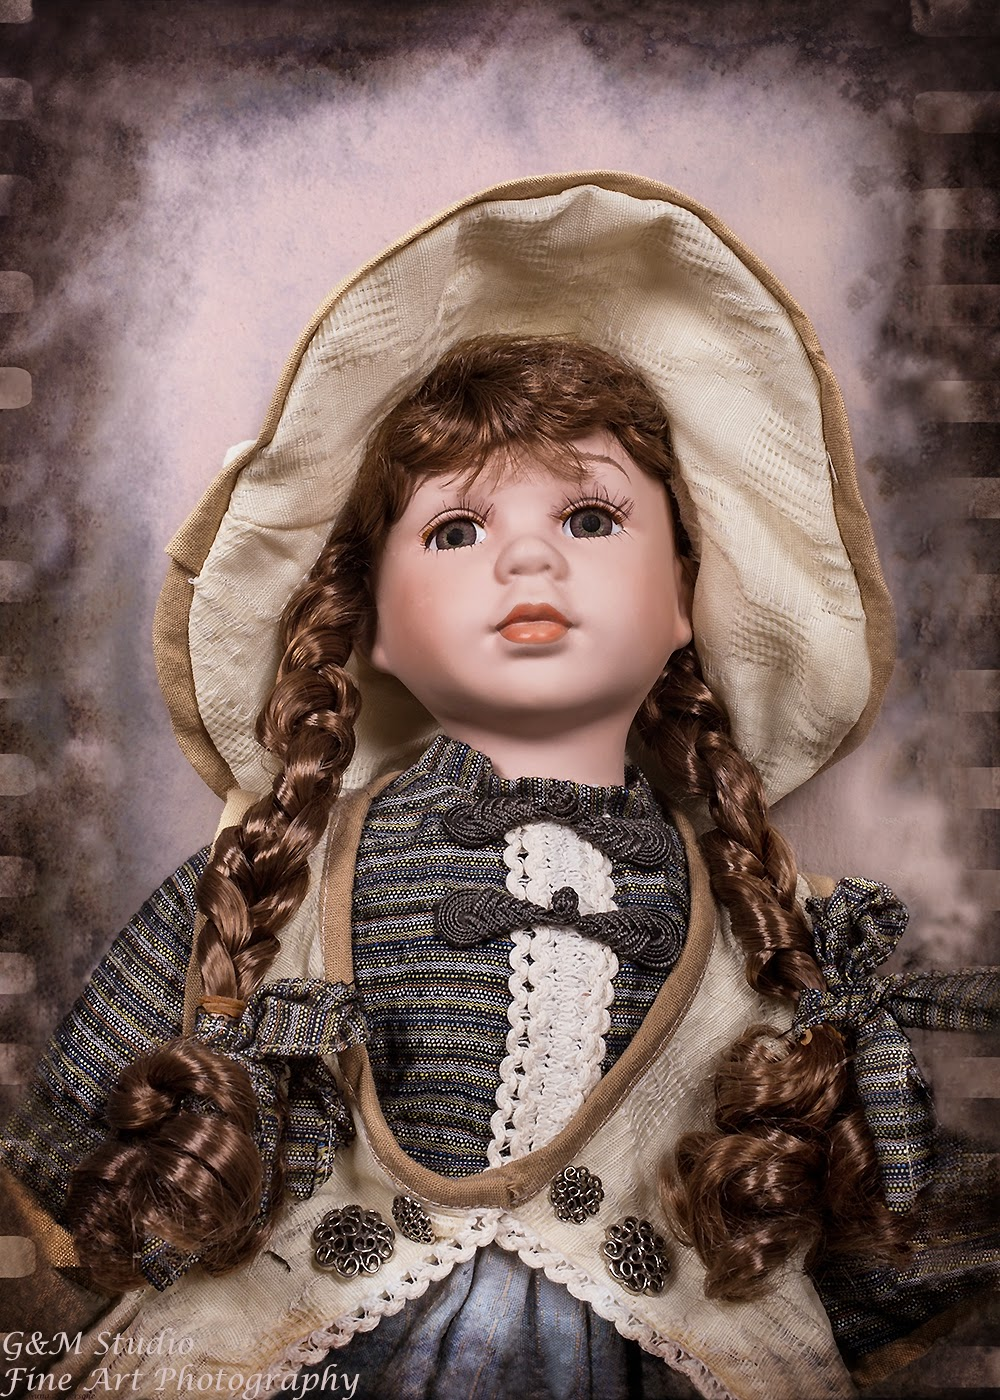 gunadesign guna andersone doll Once upon time